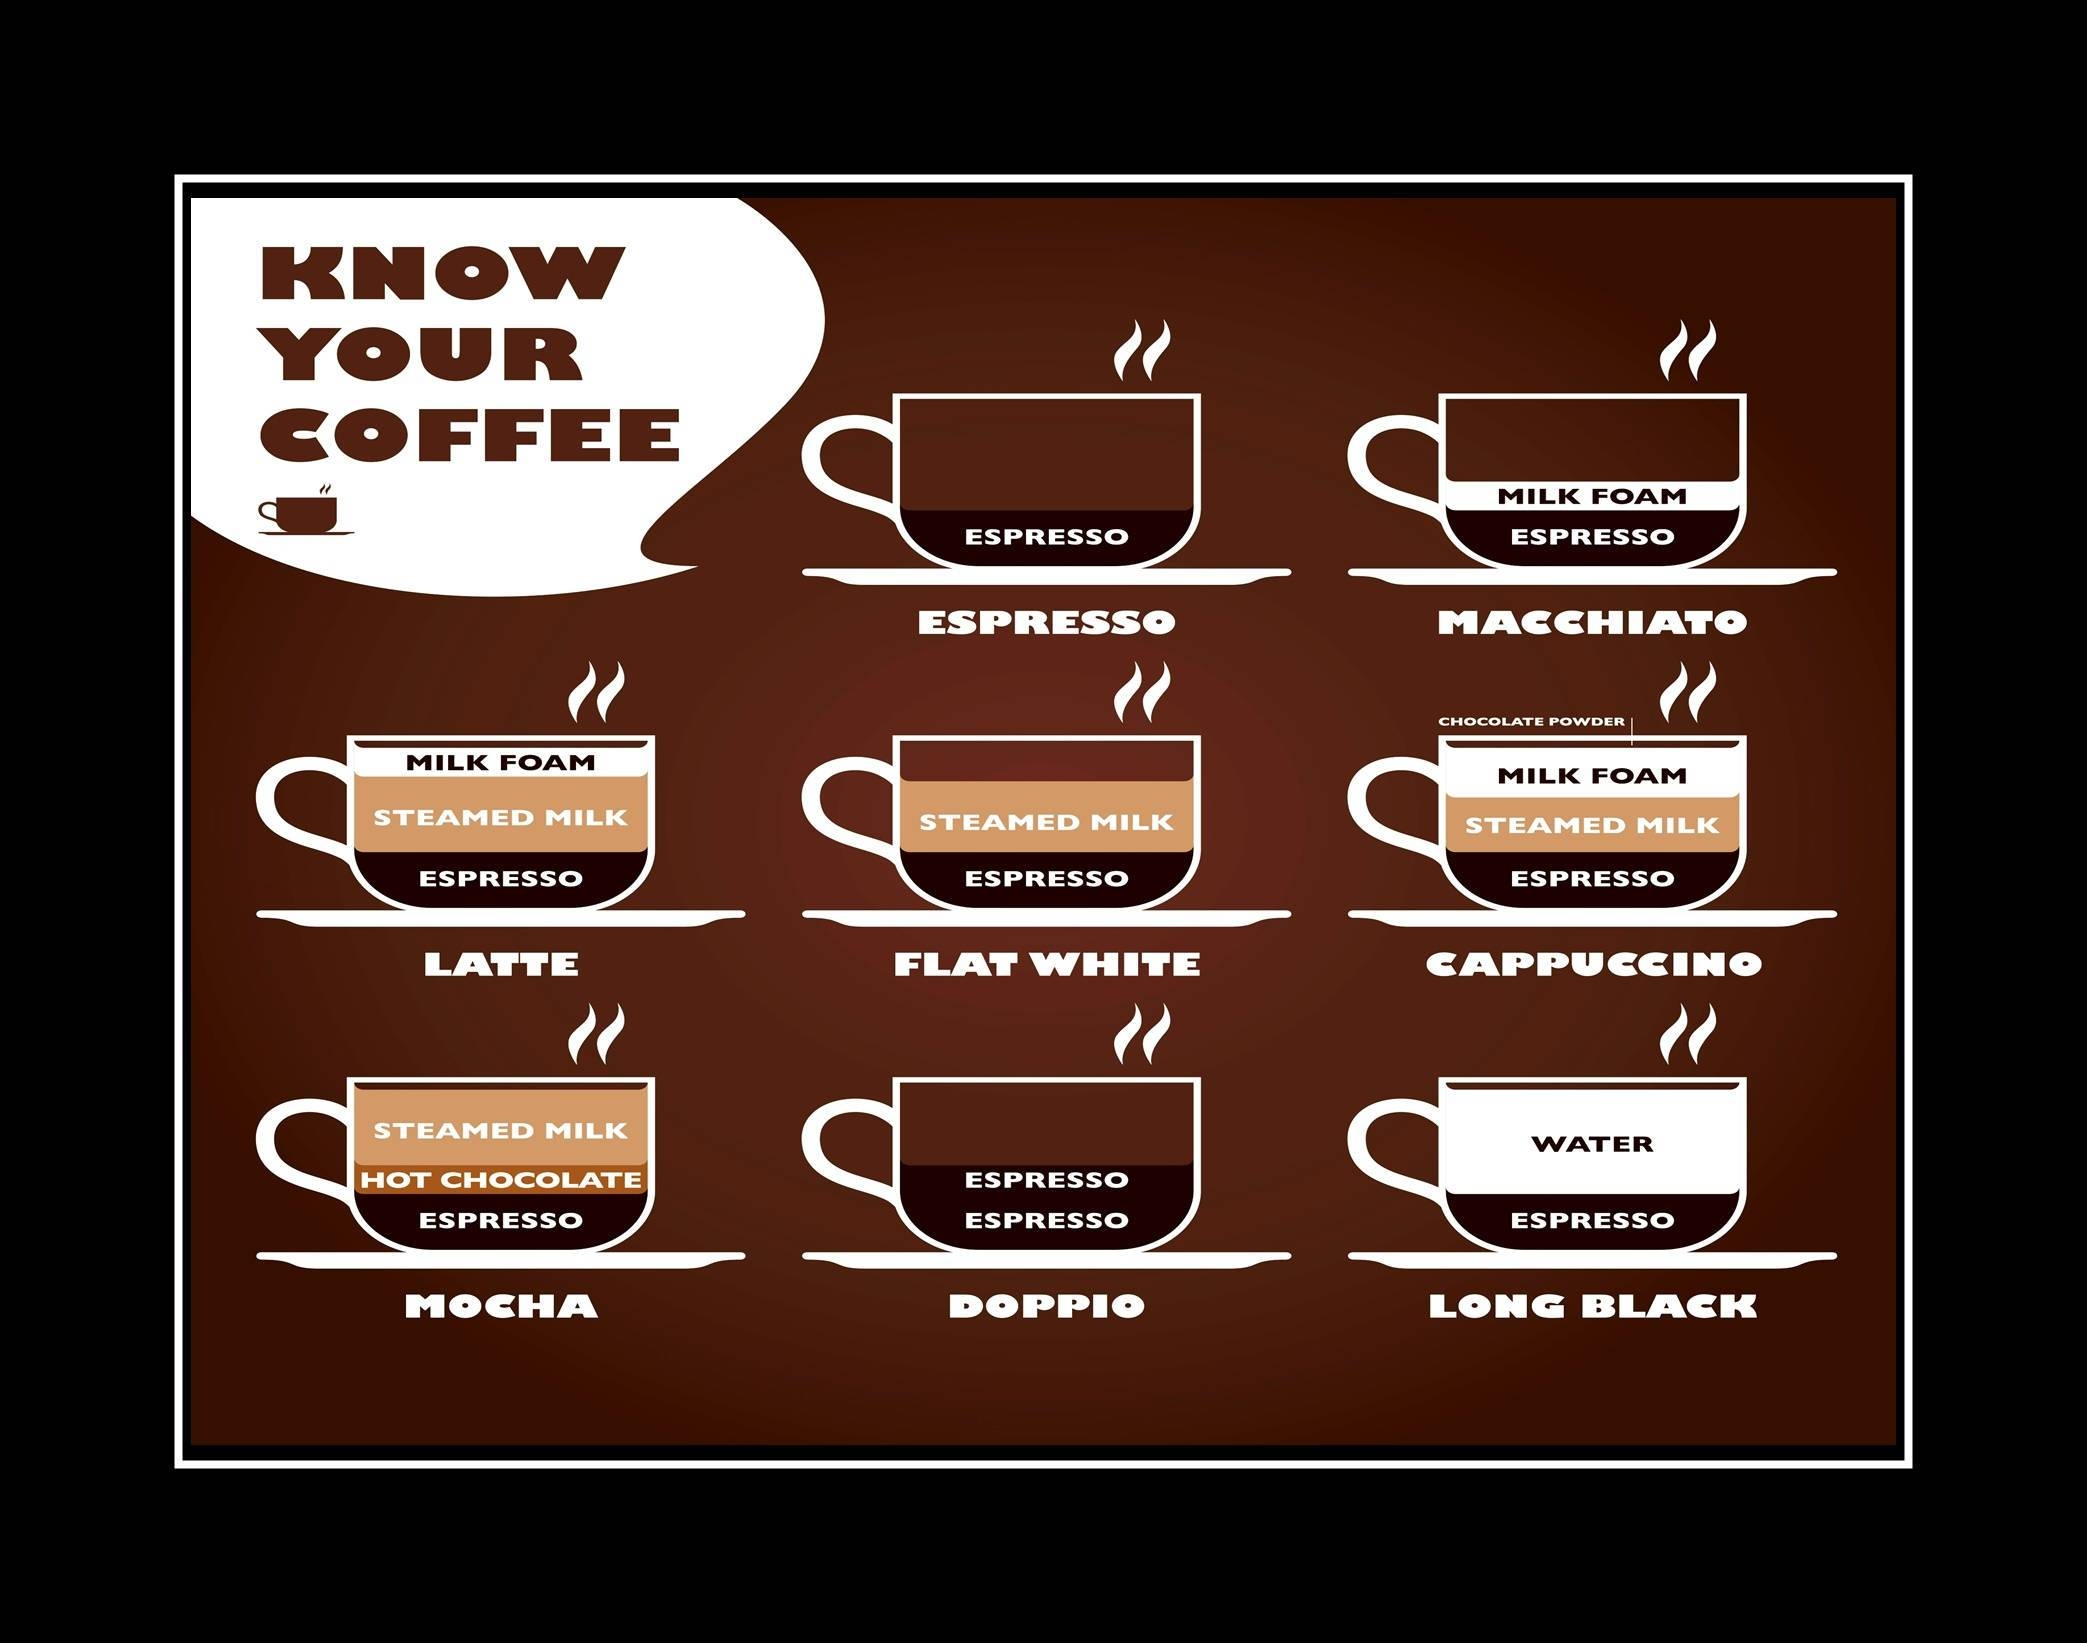 Know Your Coffee Poster, Kitchen Wall Decor, Cafe Wall Art Gift Throughout Best And Newest Cafe Latte Kitchen Wall Art (View 9 of 30)